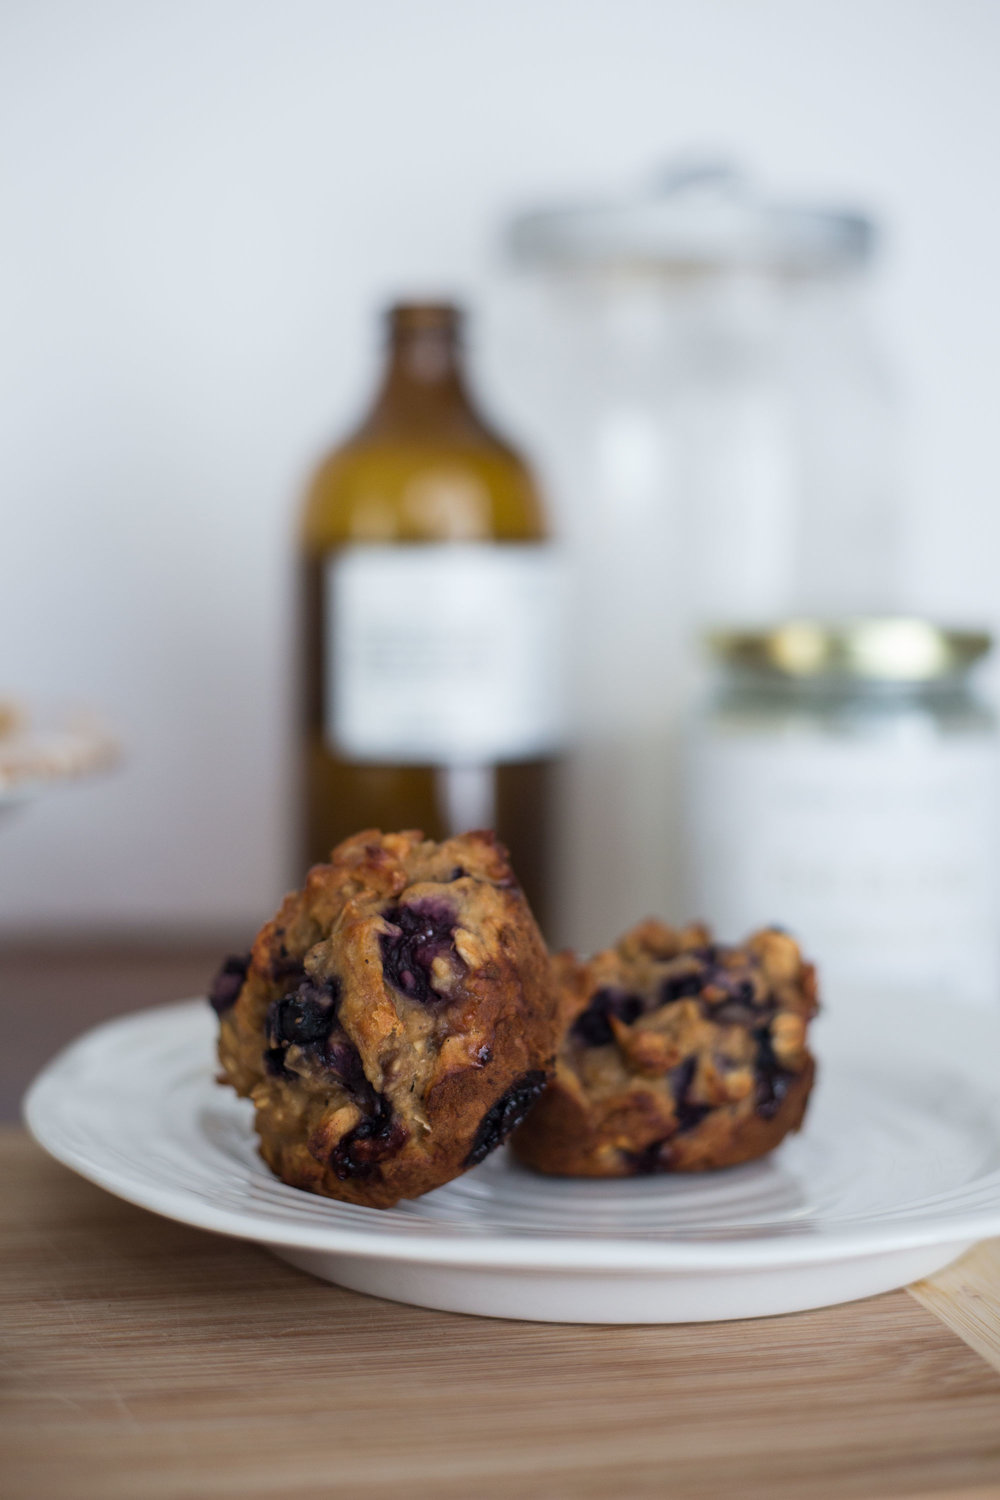 Good-Life-Juice-The-Blend-Homemade-Muffins-Three.jpg